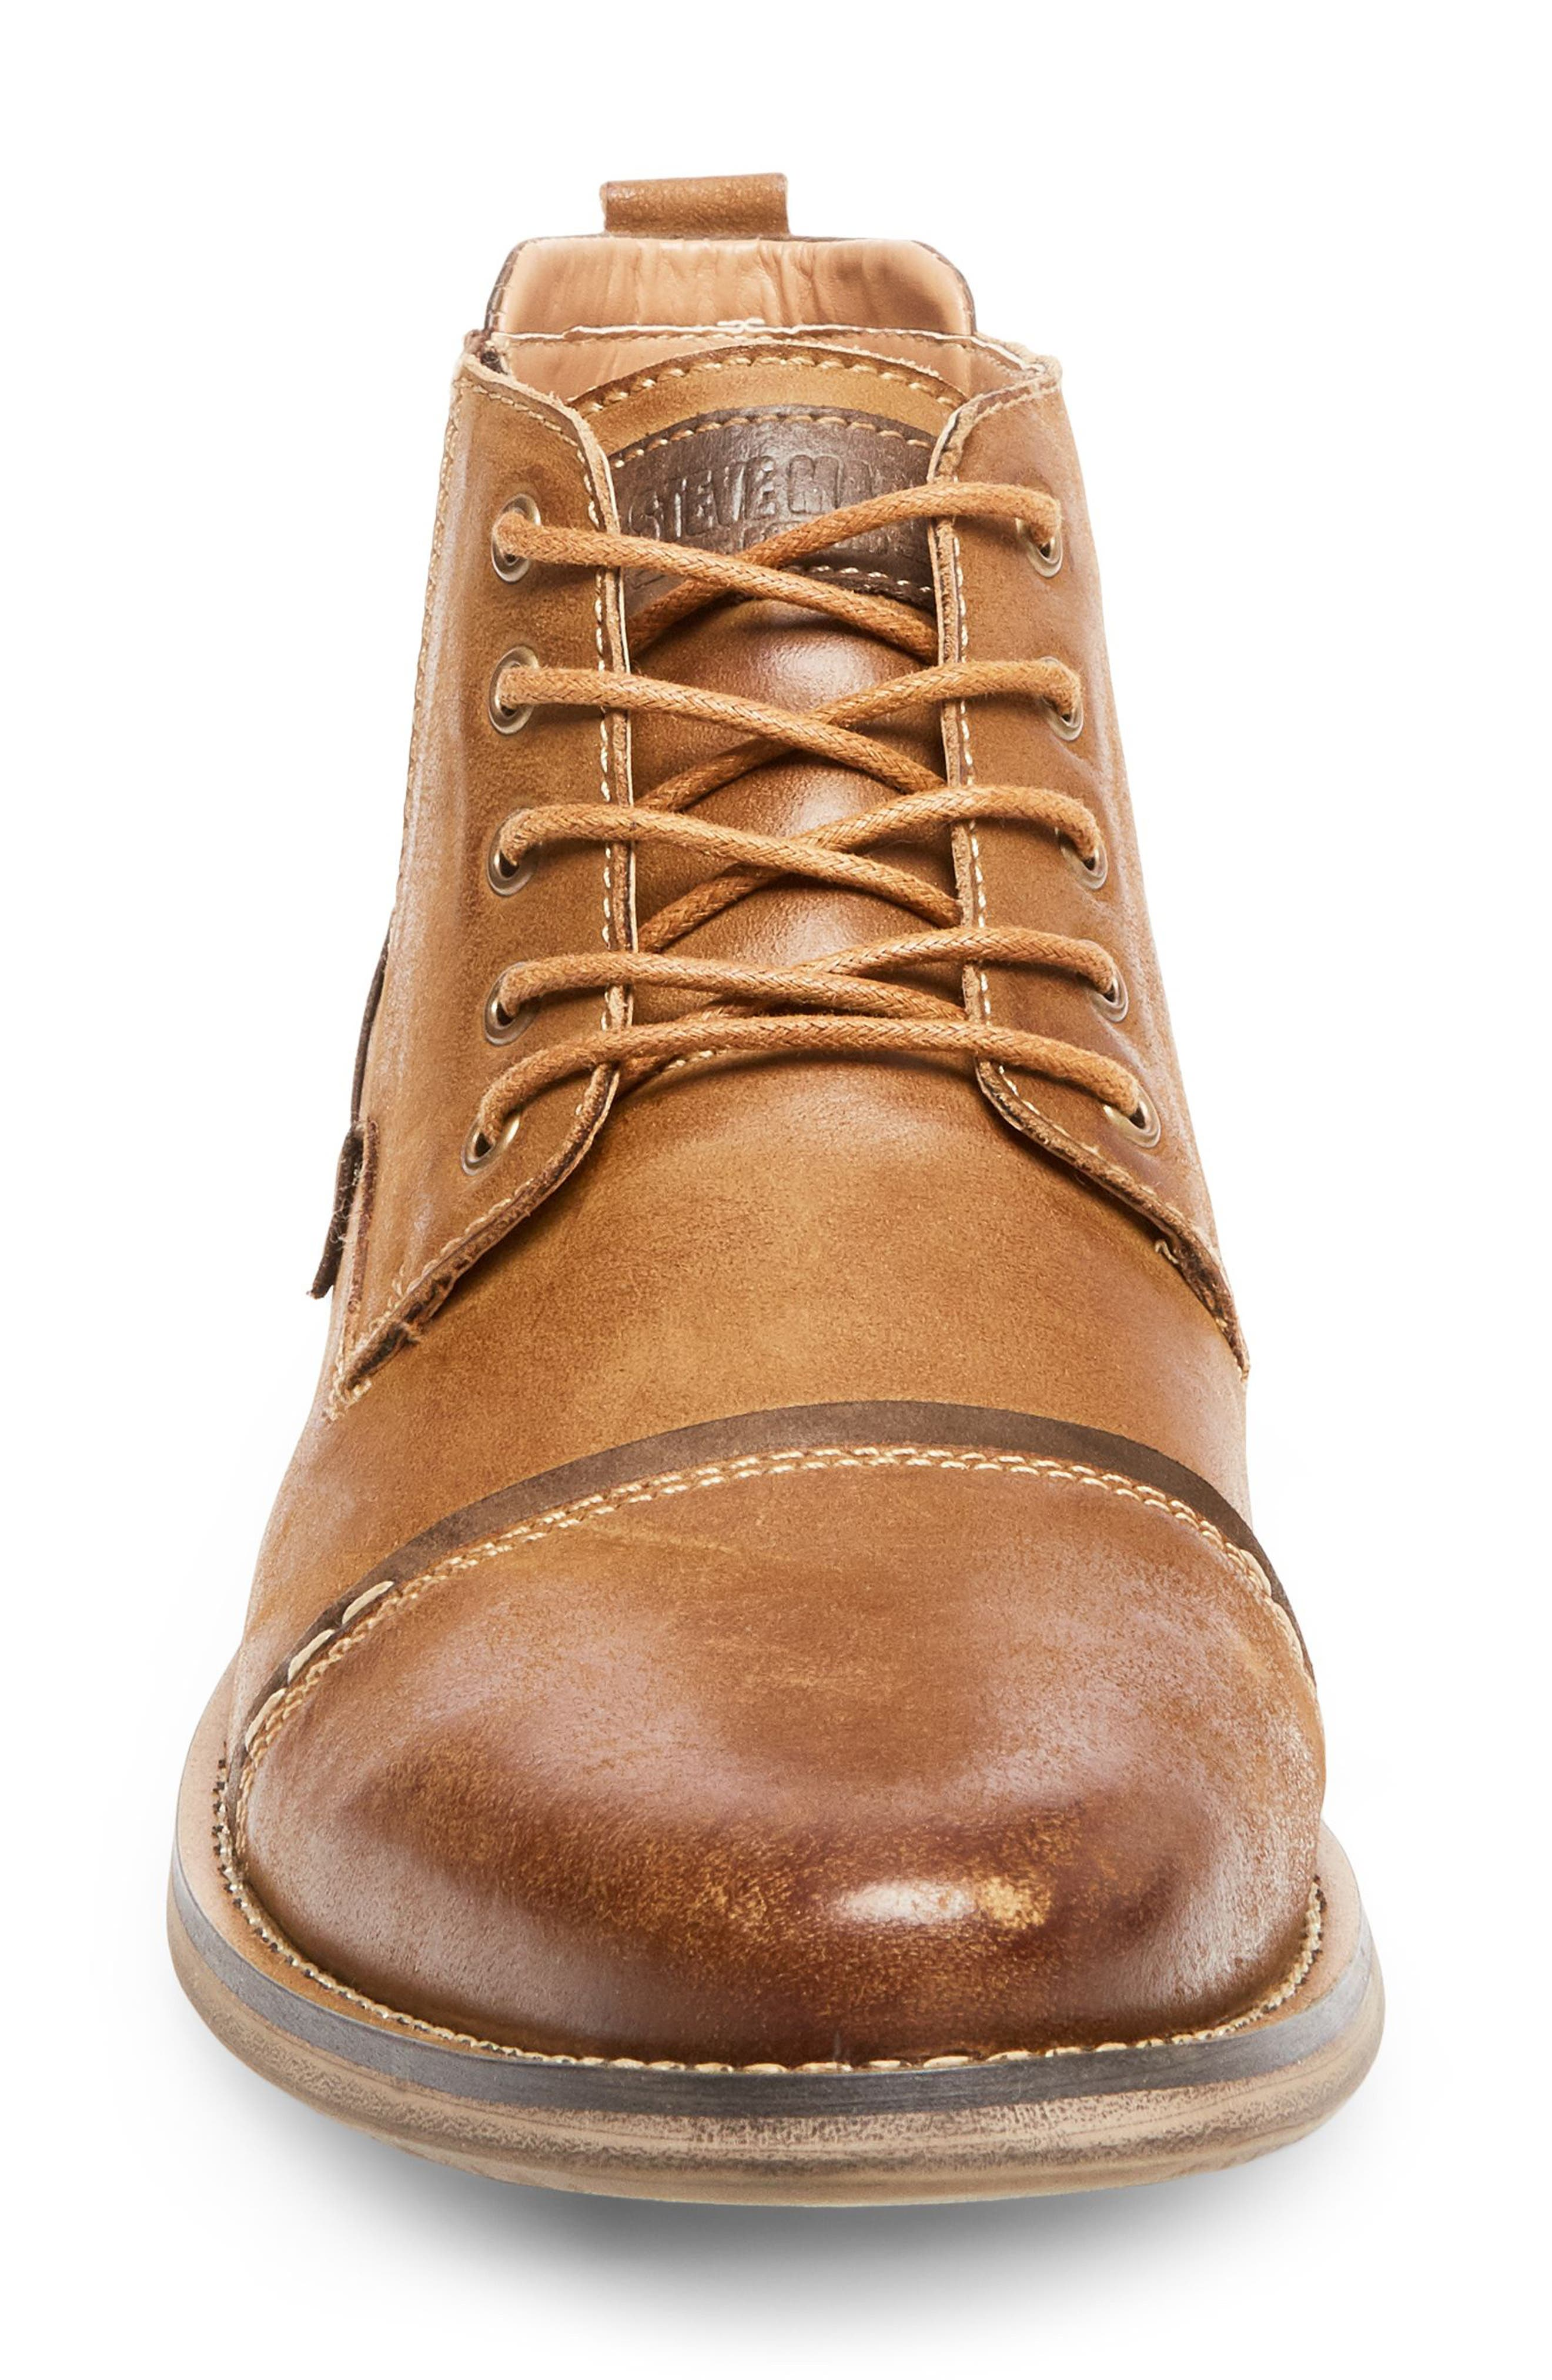 Proxy Cap Toe Boot,                             Alternate thumbnail 4, color,                             200